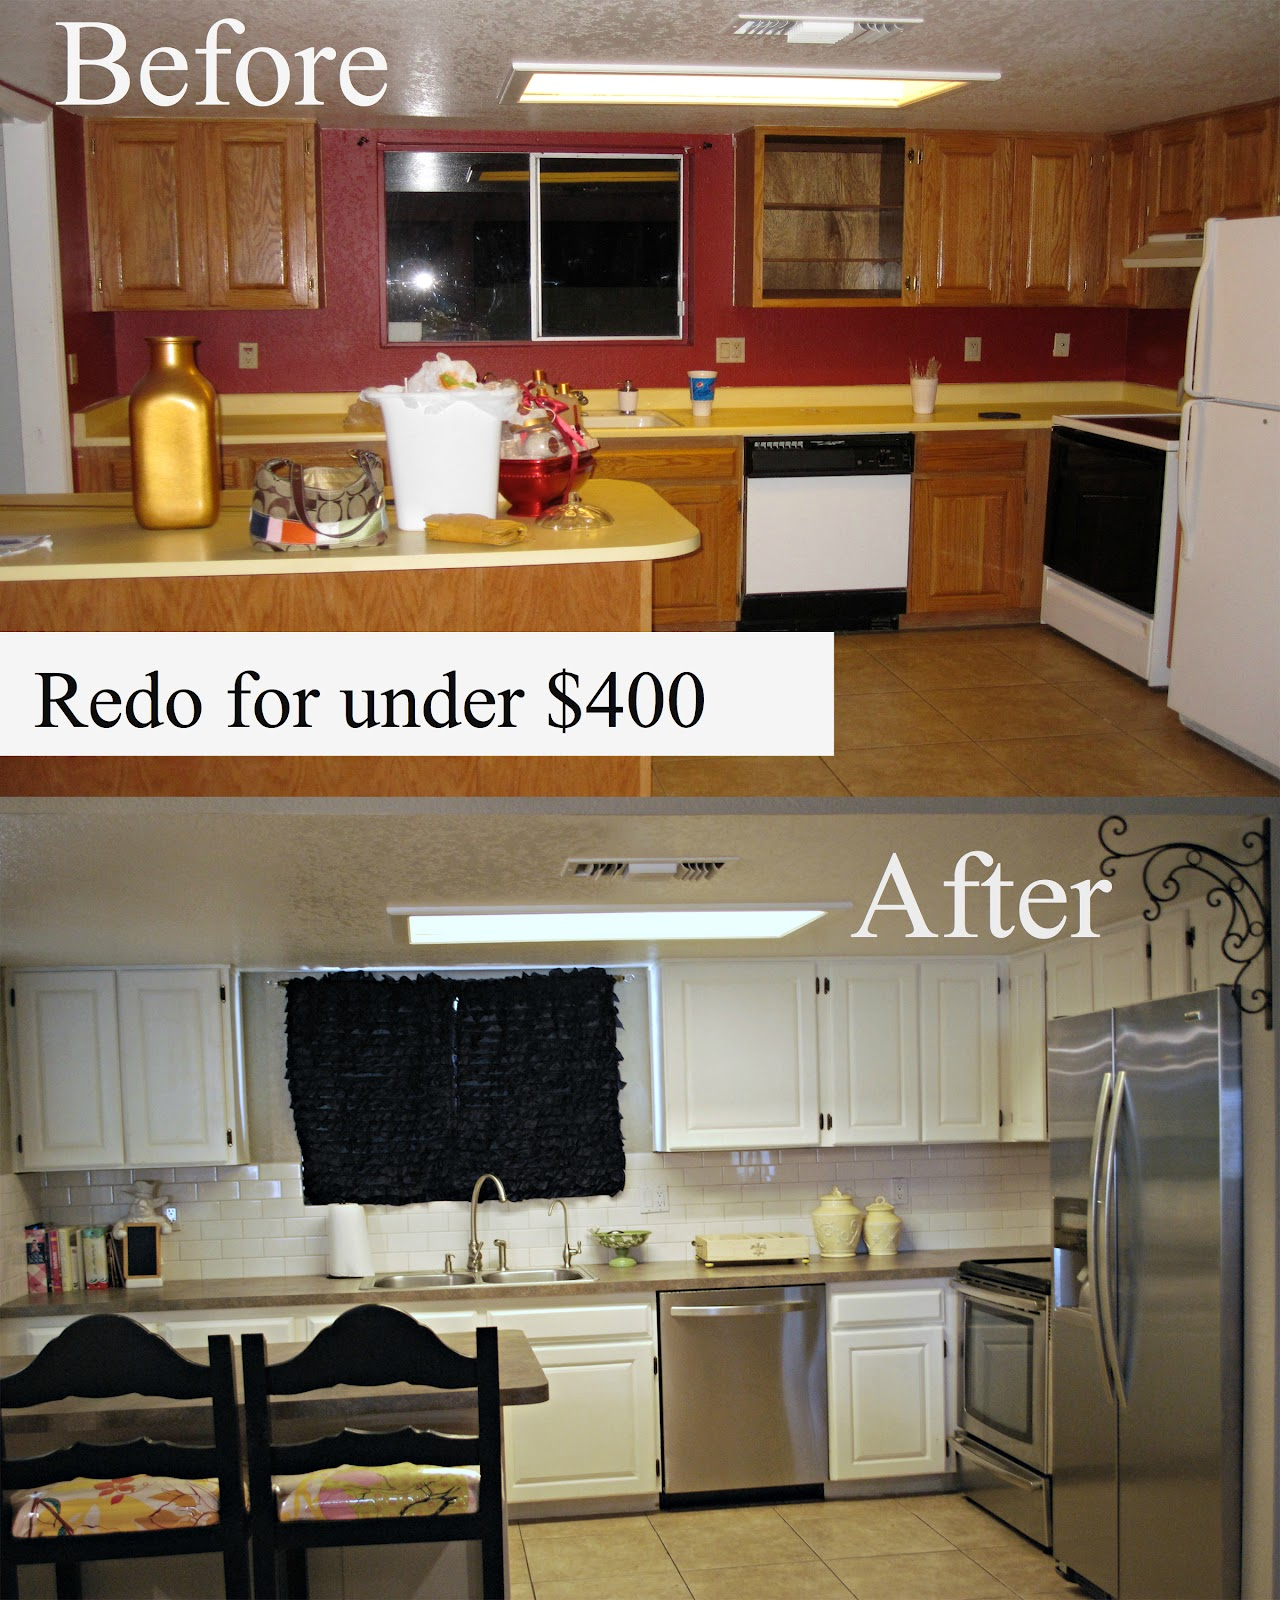 My Kitchen Redo Under 400 Classy Clutter